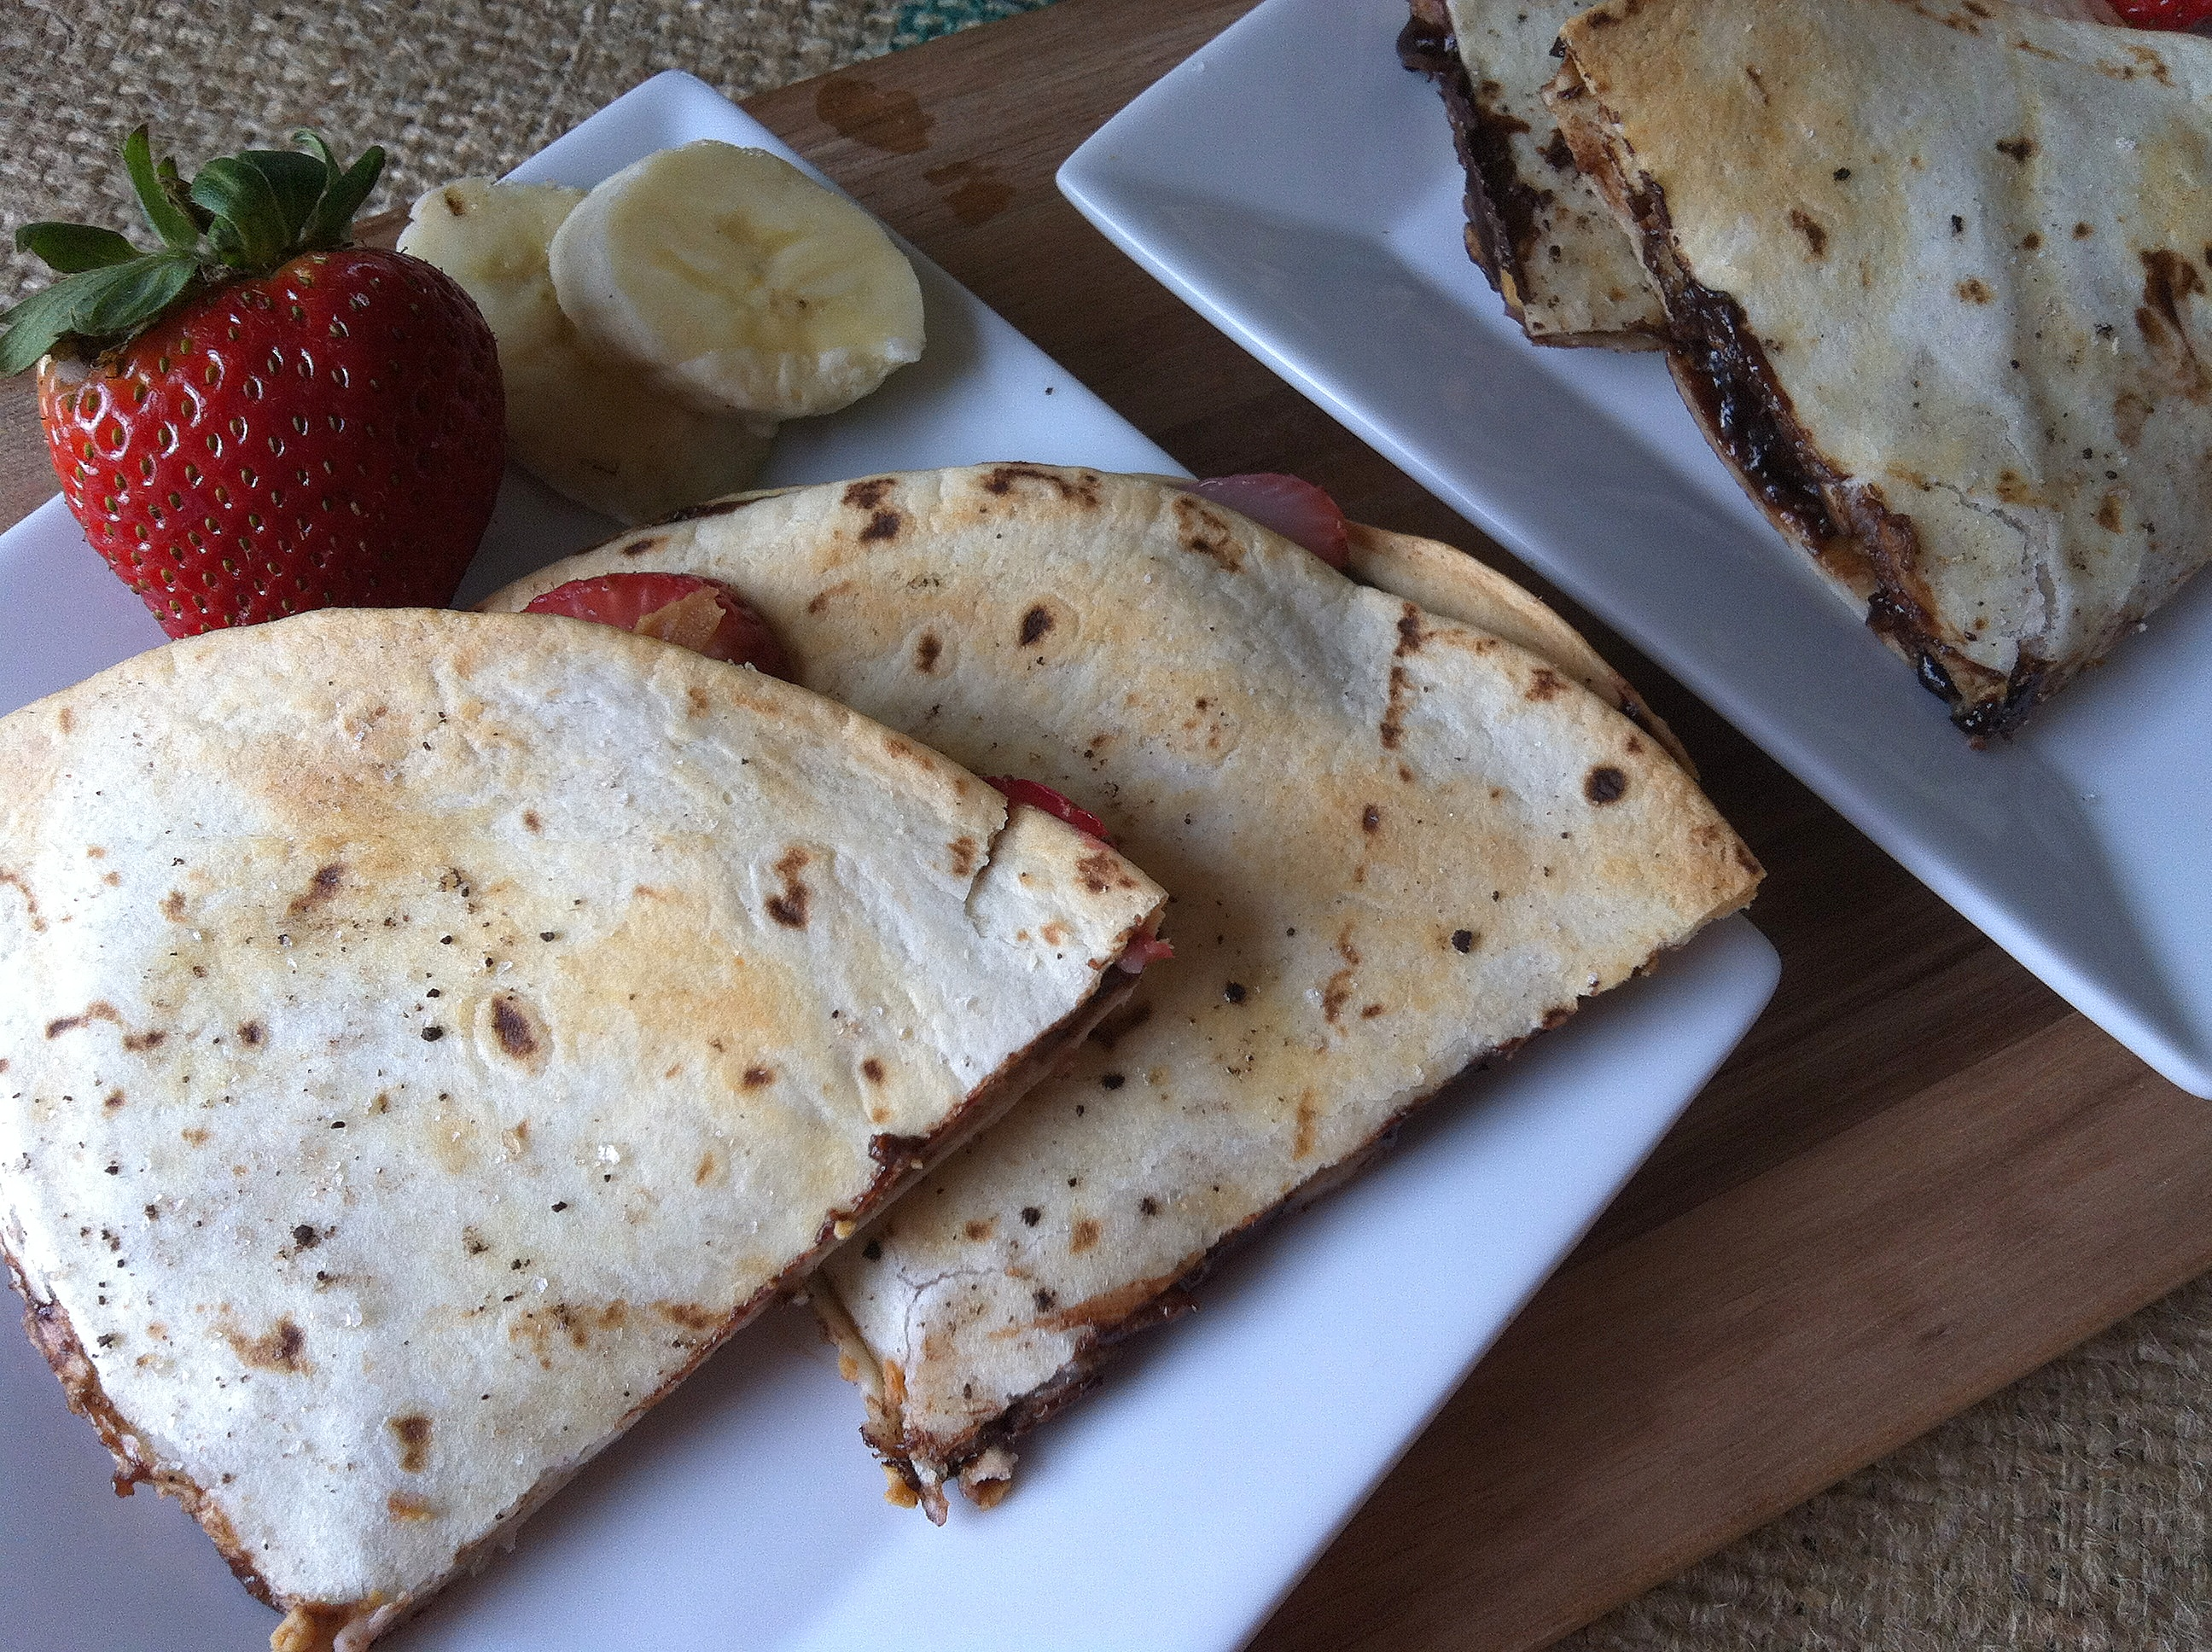 Dessert Quesadilla with fruit